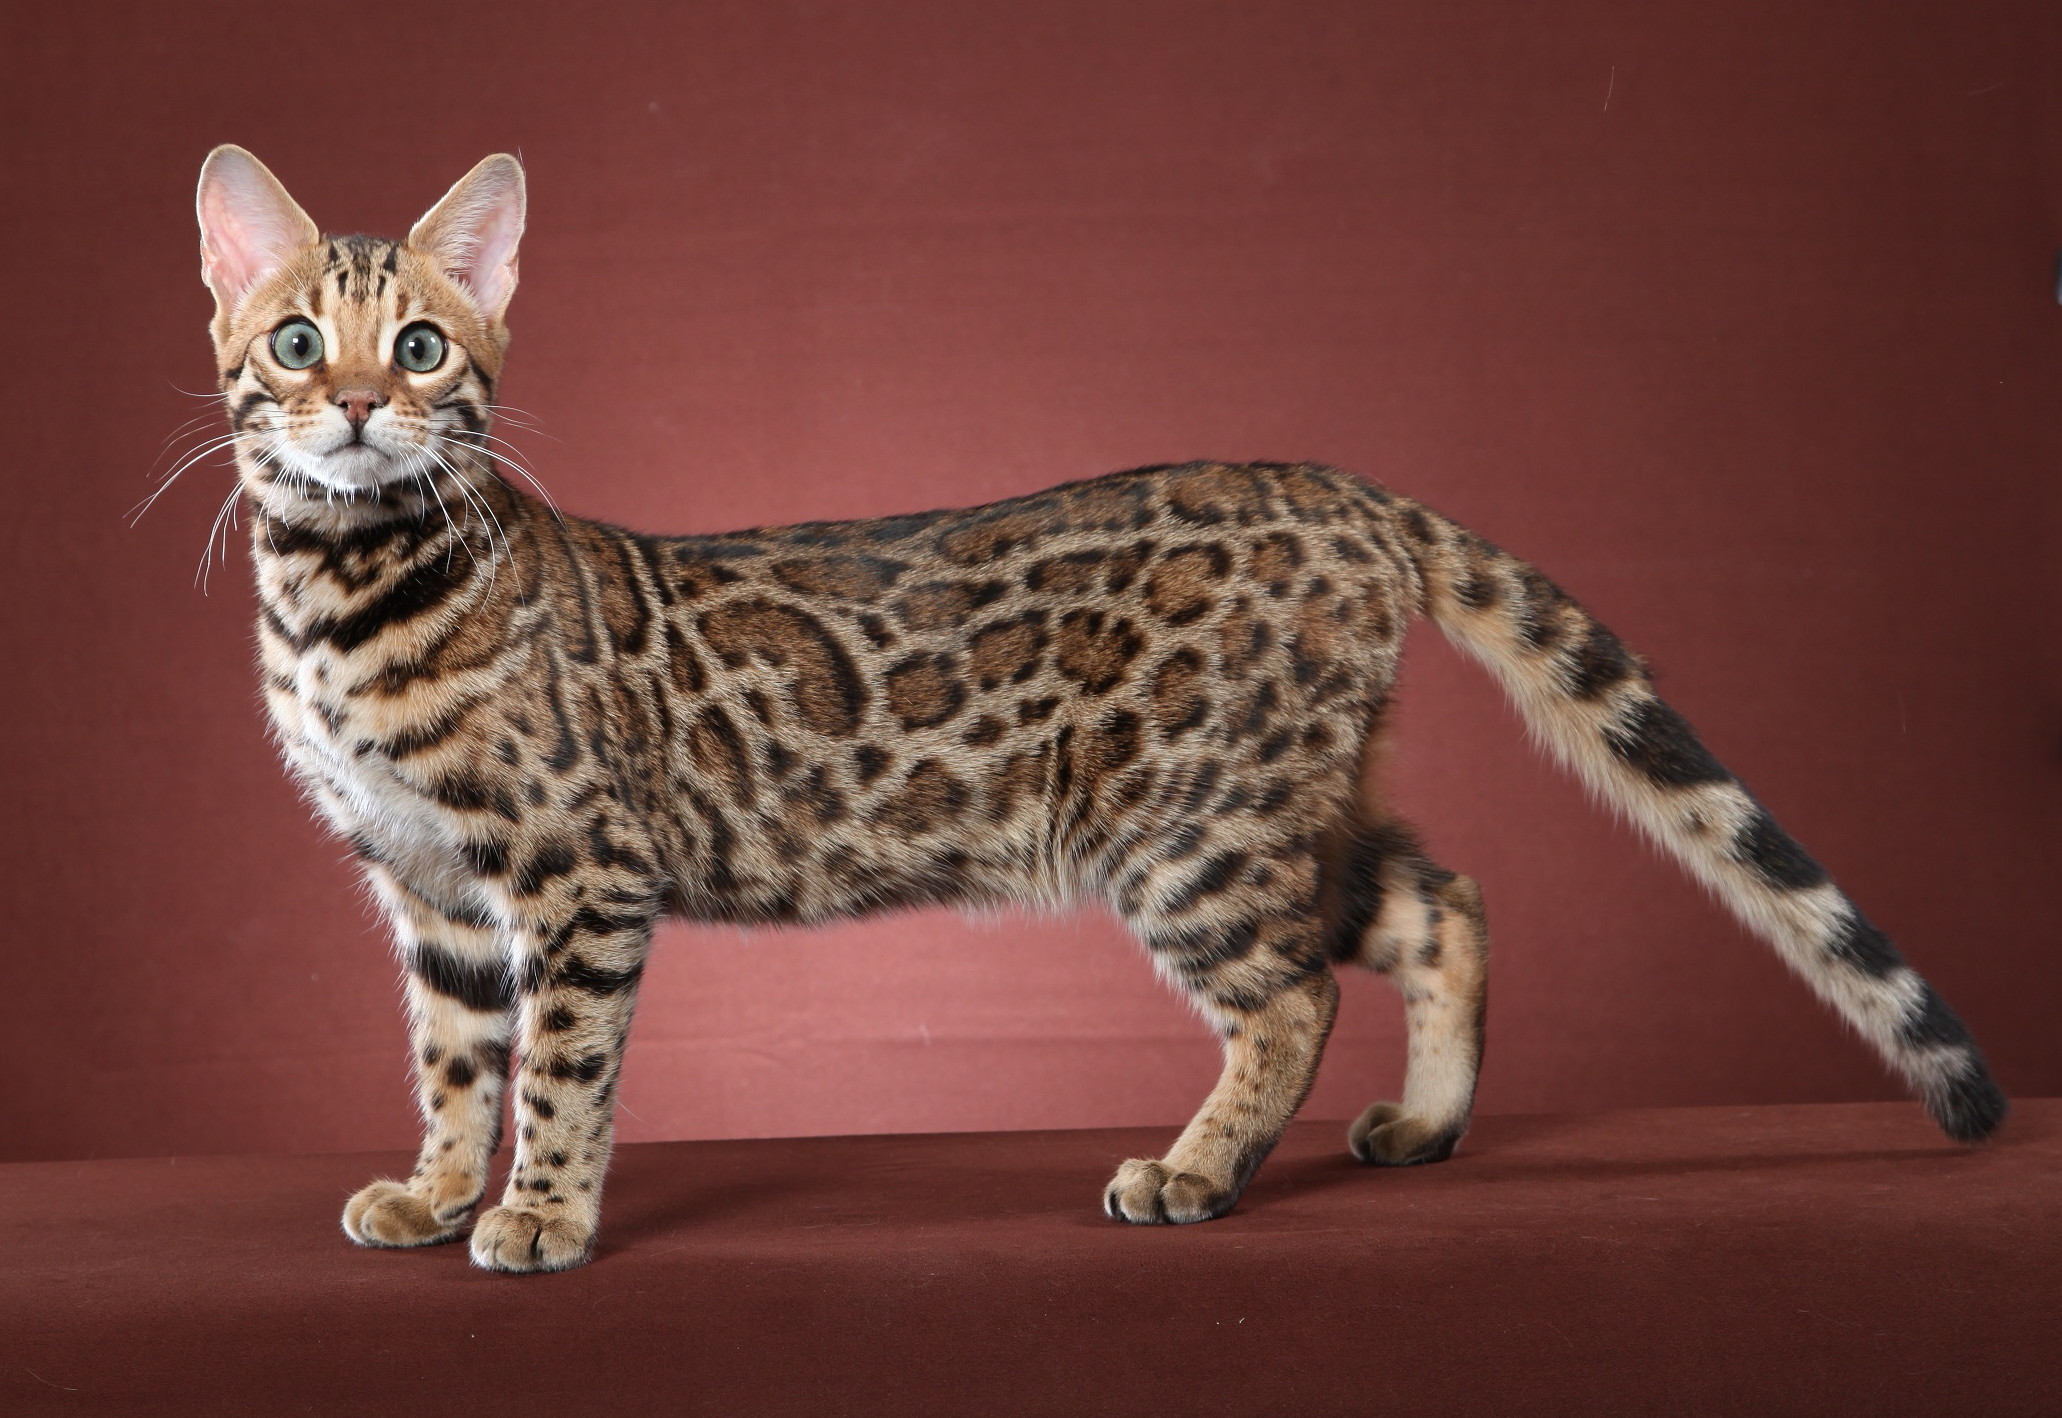 F2] Bengal Cat & Kittens [GUIDE] Half For Sale Price & More